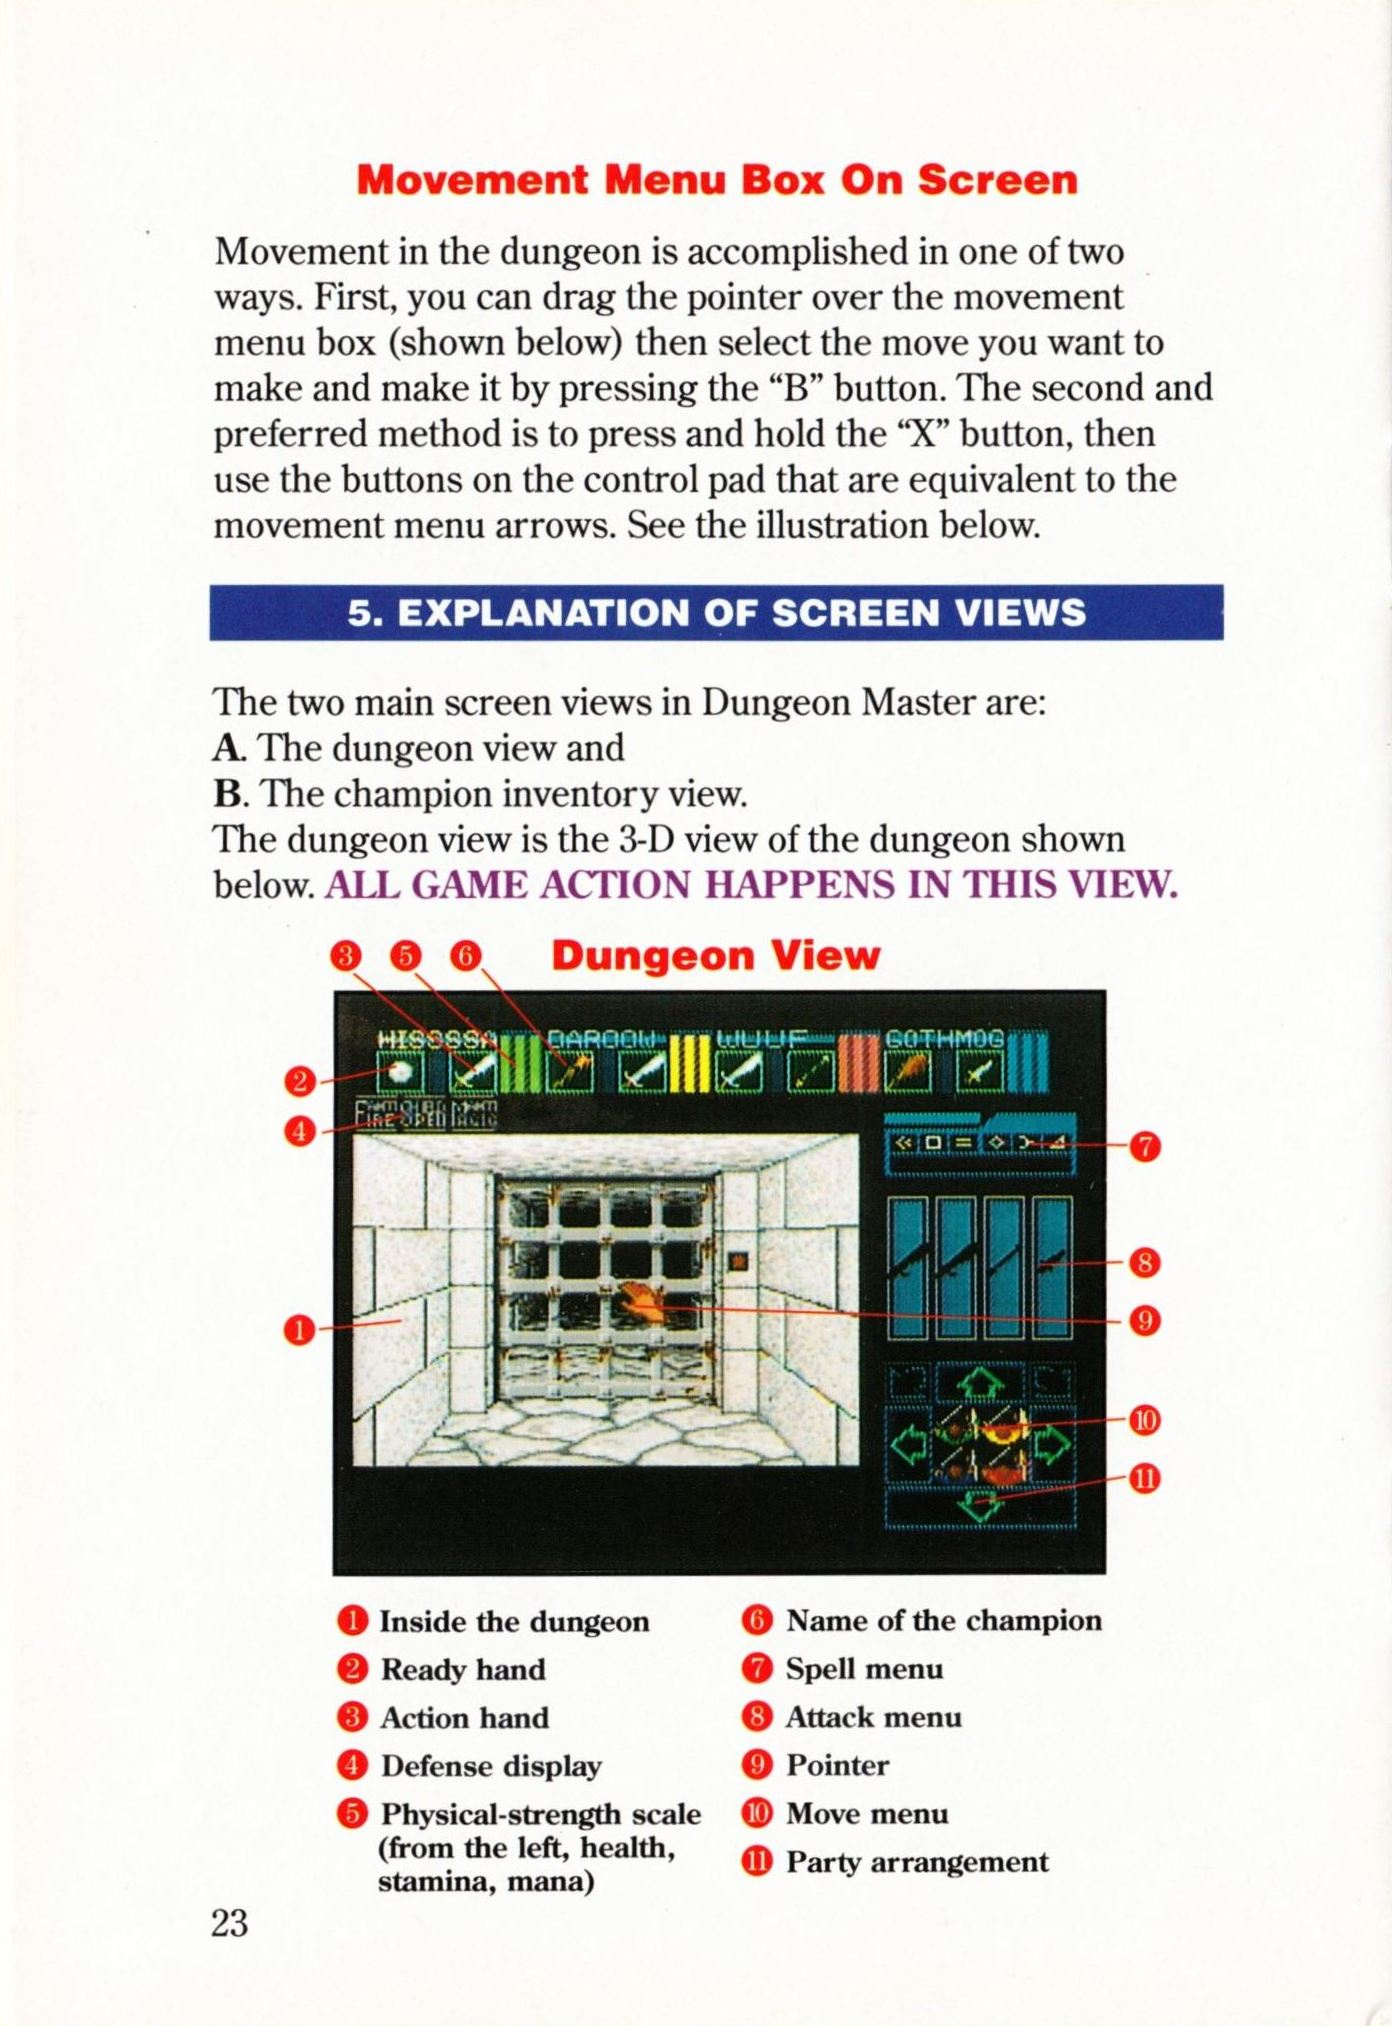 Game - Dungeon Master - US - Super NES - Manual - Page 026 - Scan